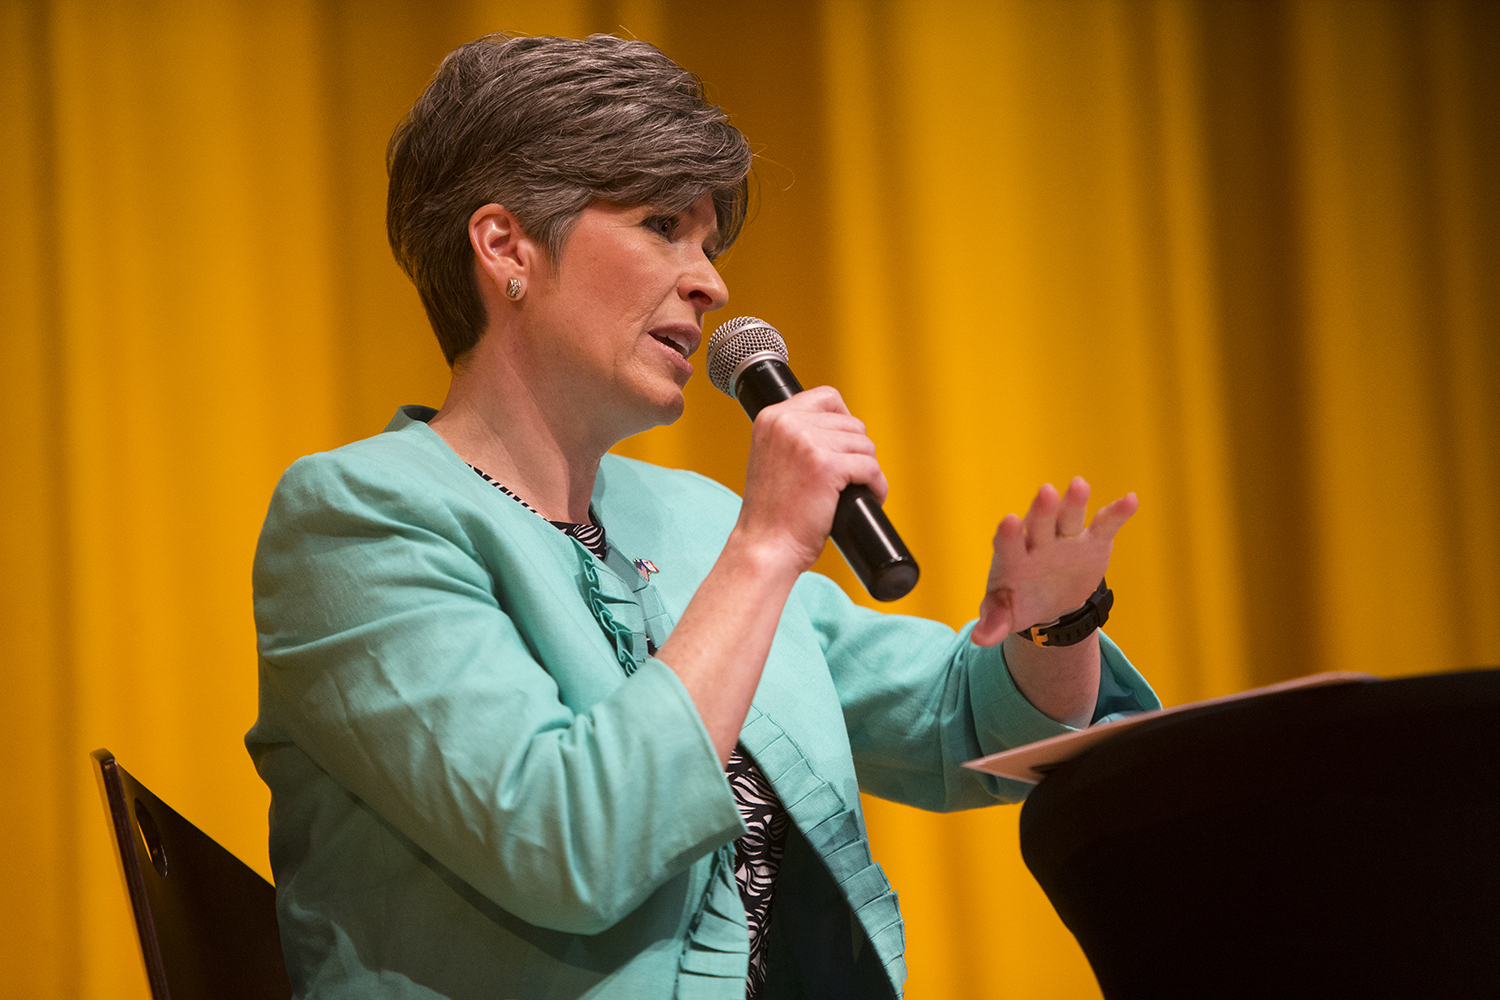 Sen. Joni Ernst, R-Iowa, speaks during a town hall meeting in Sinclair Auditorium in Cedar Rapids on the Coe College campus on Friday, March 17, 2017.  Ernst is completing her 99 county tour and will speak again in Des Moines at 5 p.m. at Drake University.